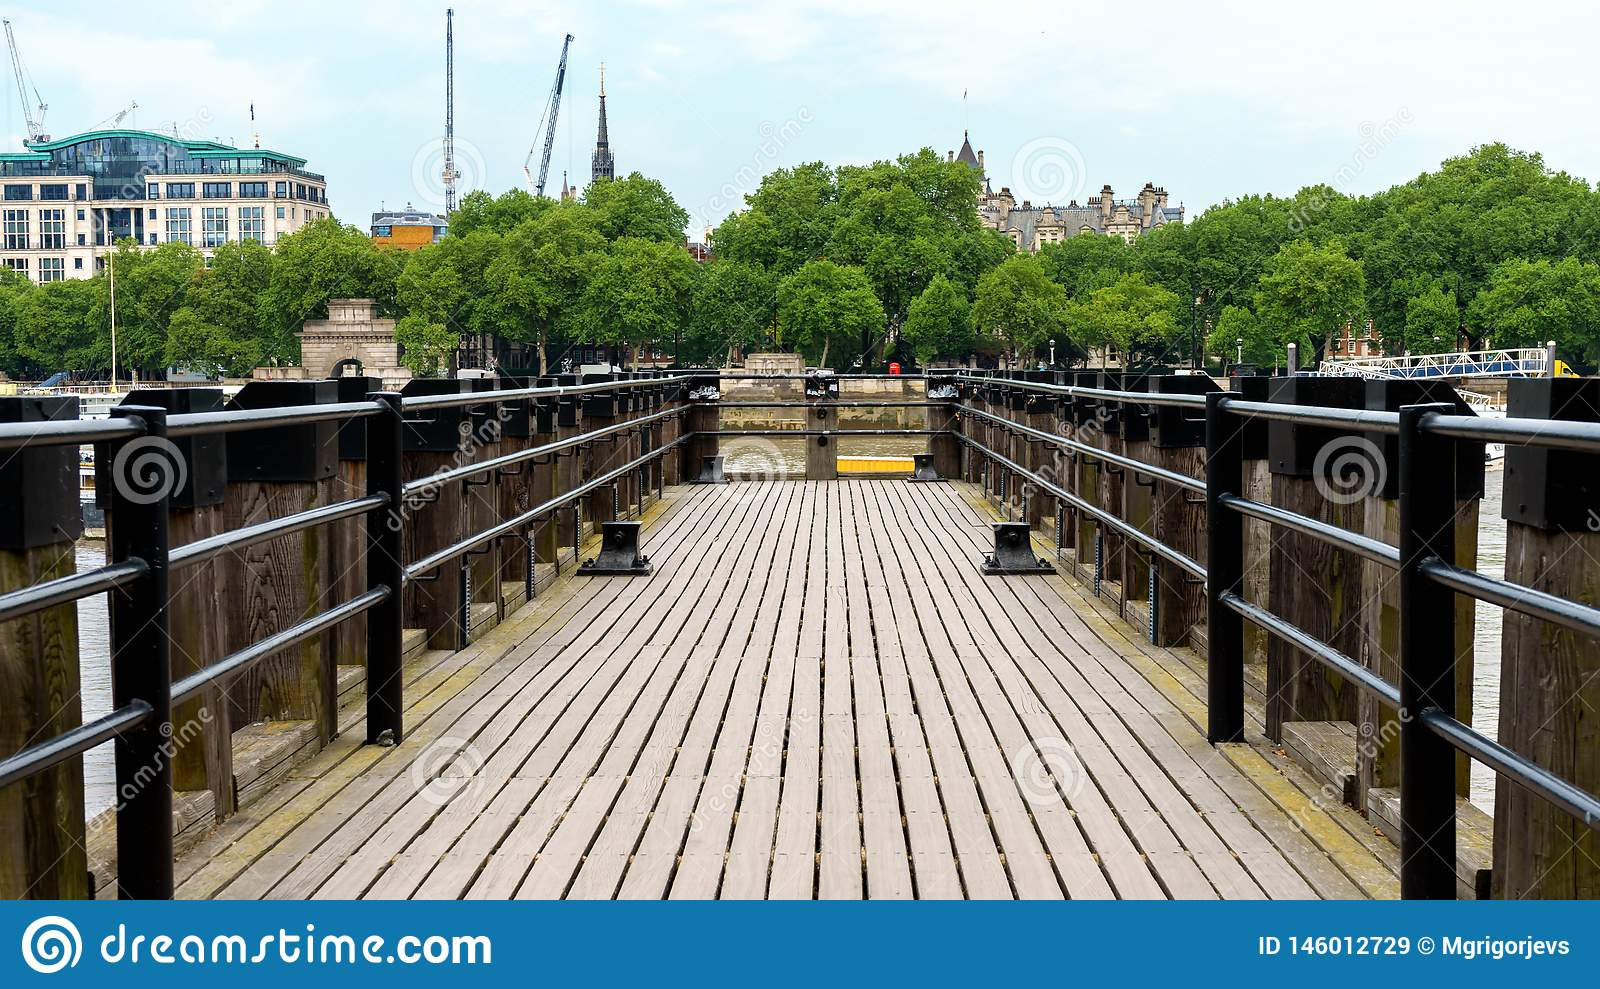 Wooden Pier at River Thames in London